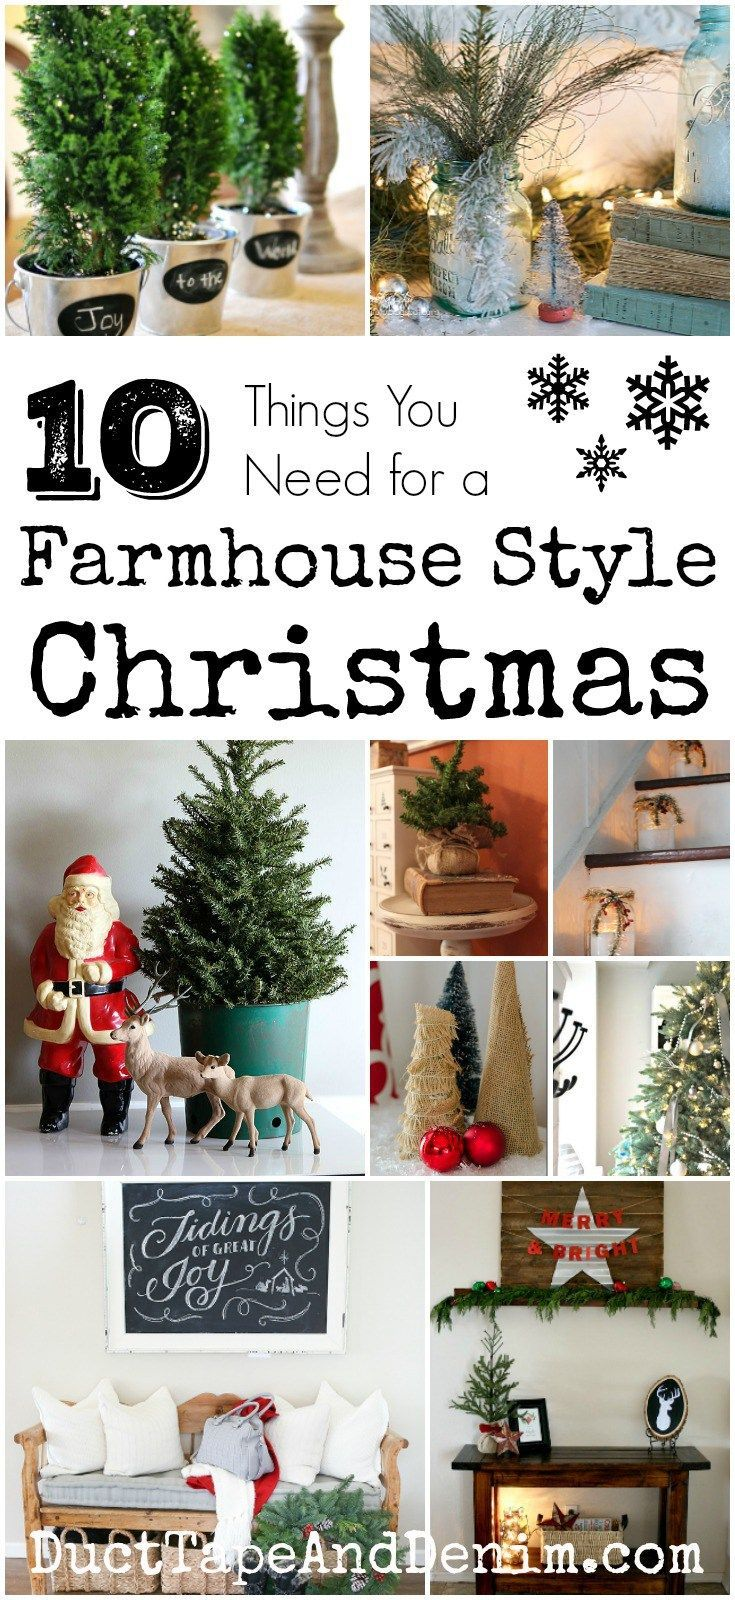 Hometalk diy christmas window decoration - 10 Things You Need For A Farmhouse Style Christmas Diy Crafts And Decor Ideas On